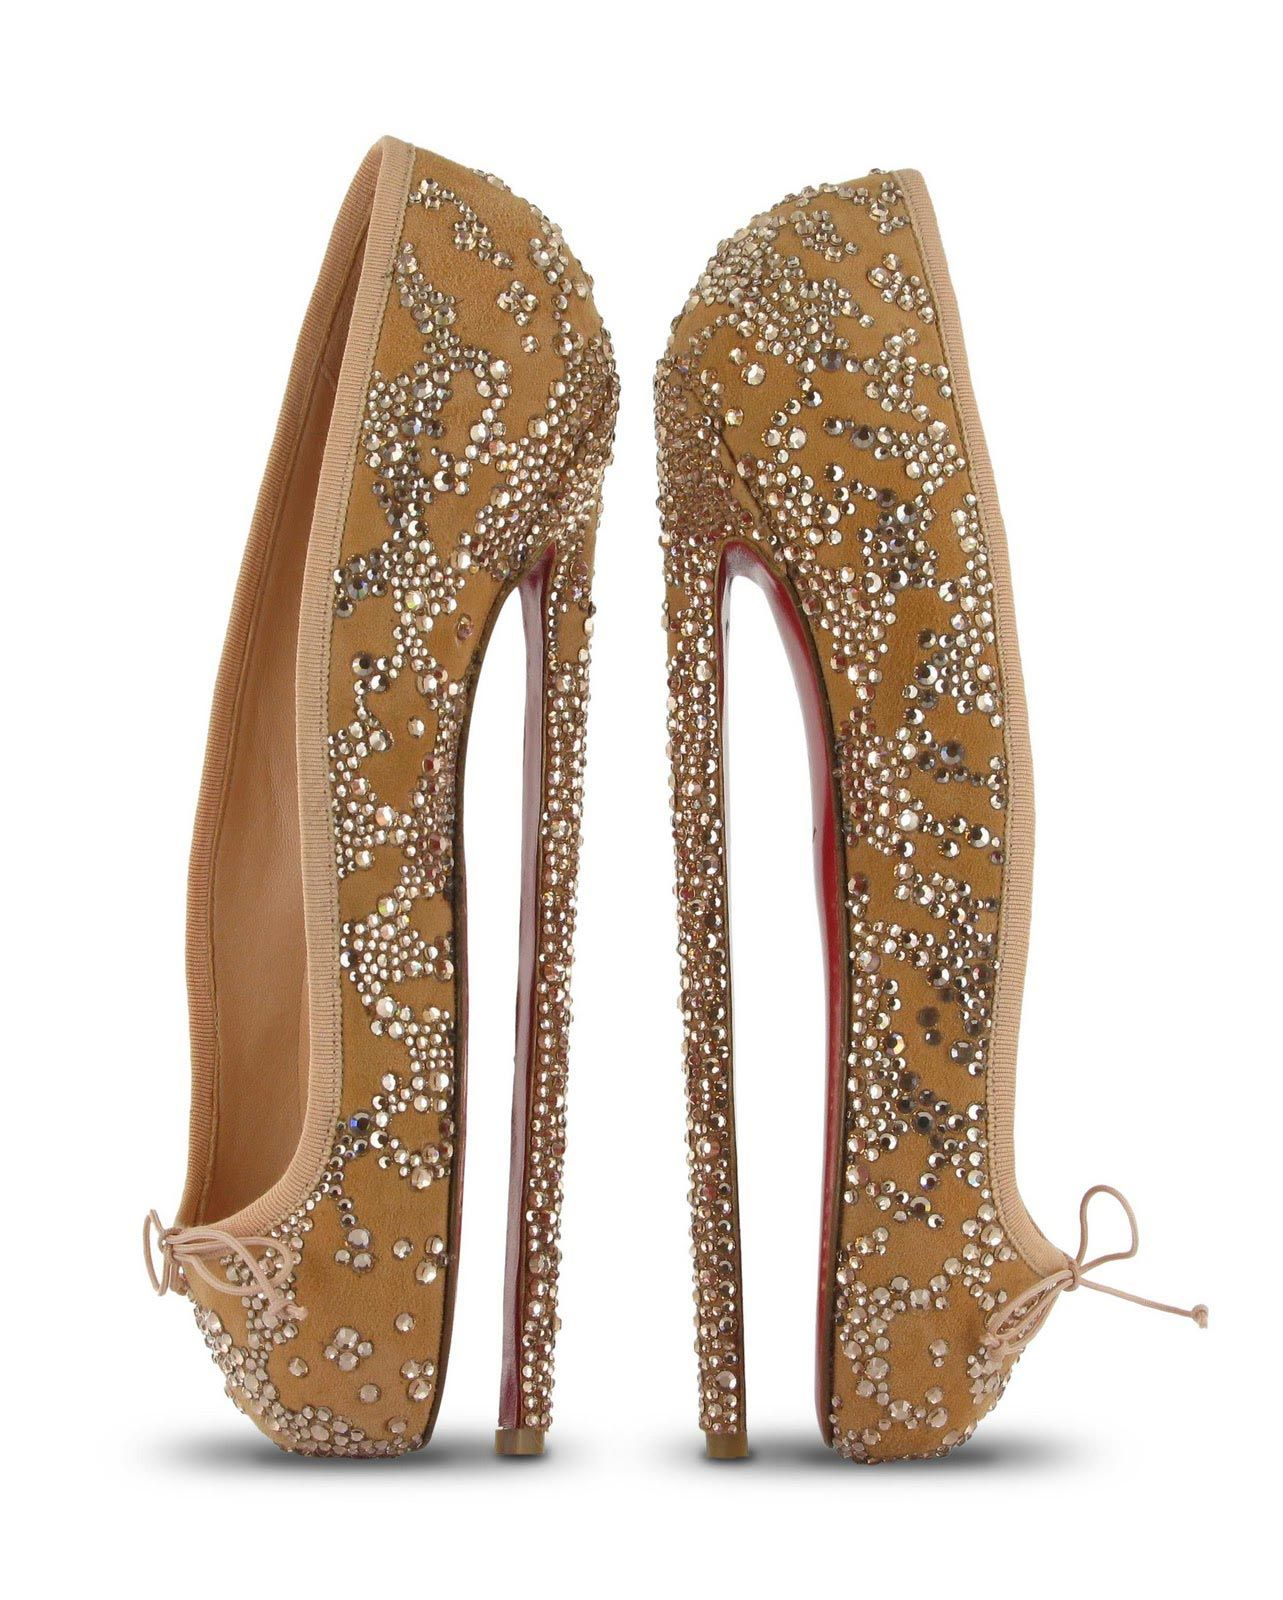 7fed2209b4d2 Christian Louboutin s Fetish Ballerine - Torturous Shoes - The Cut